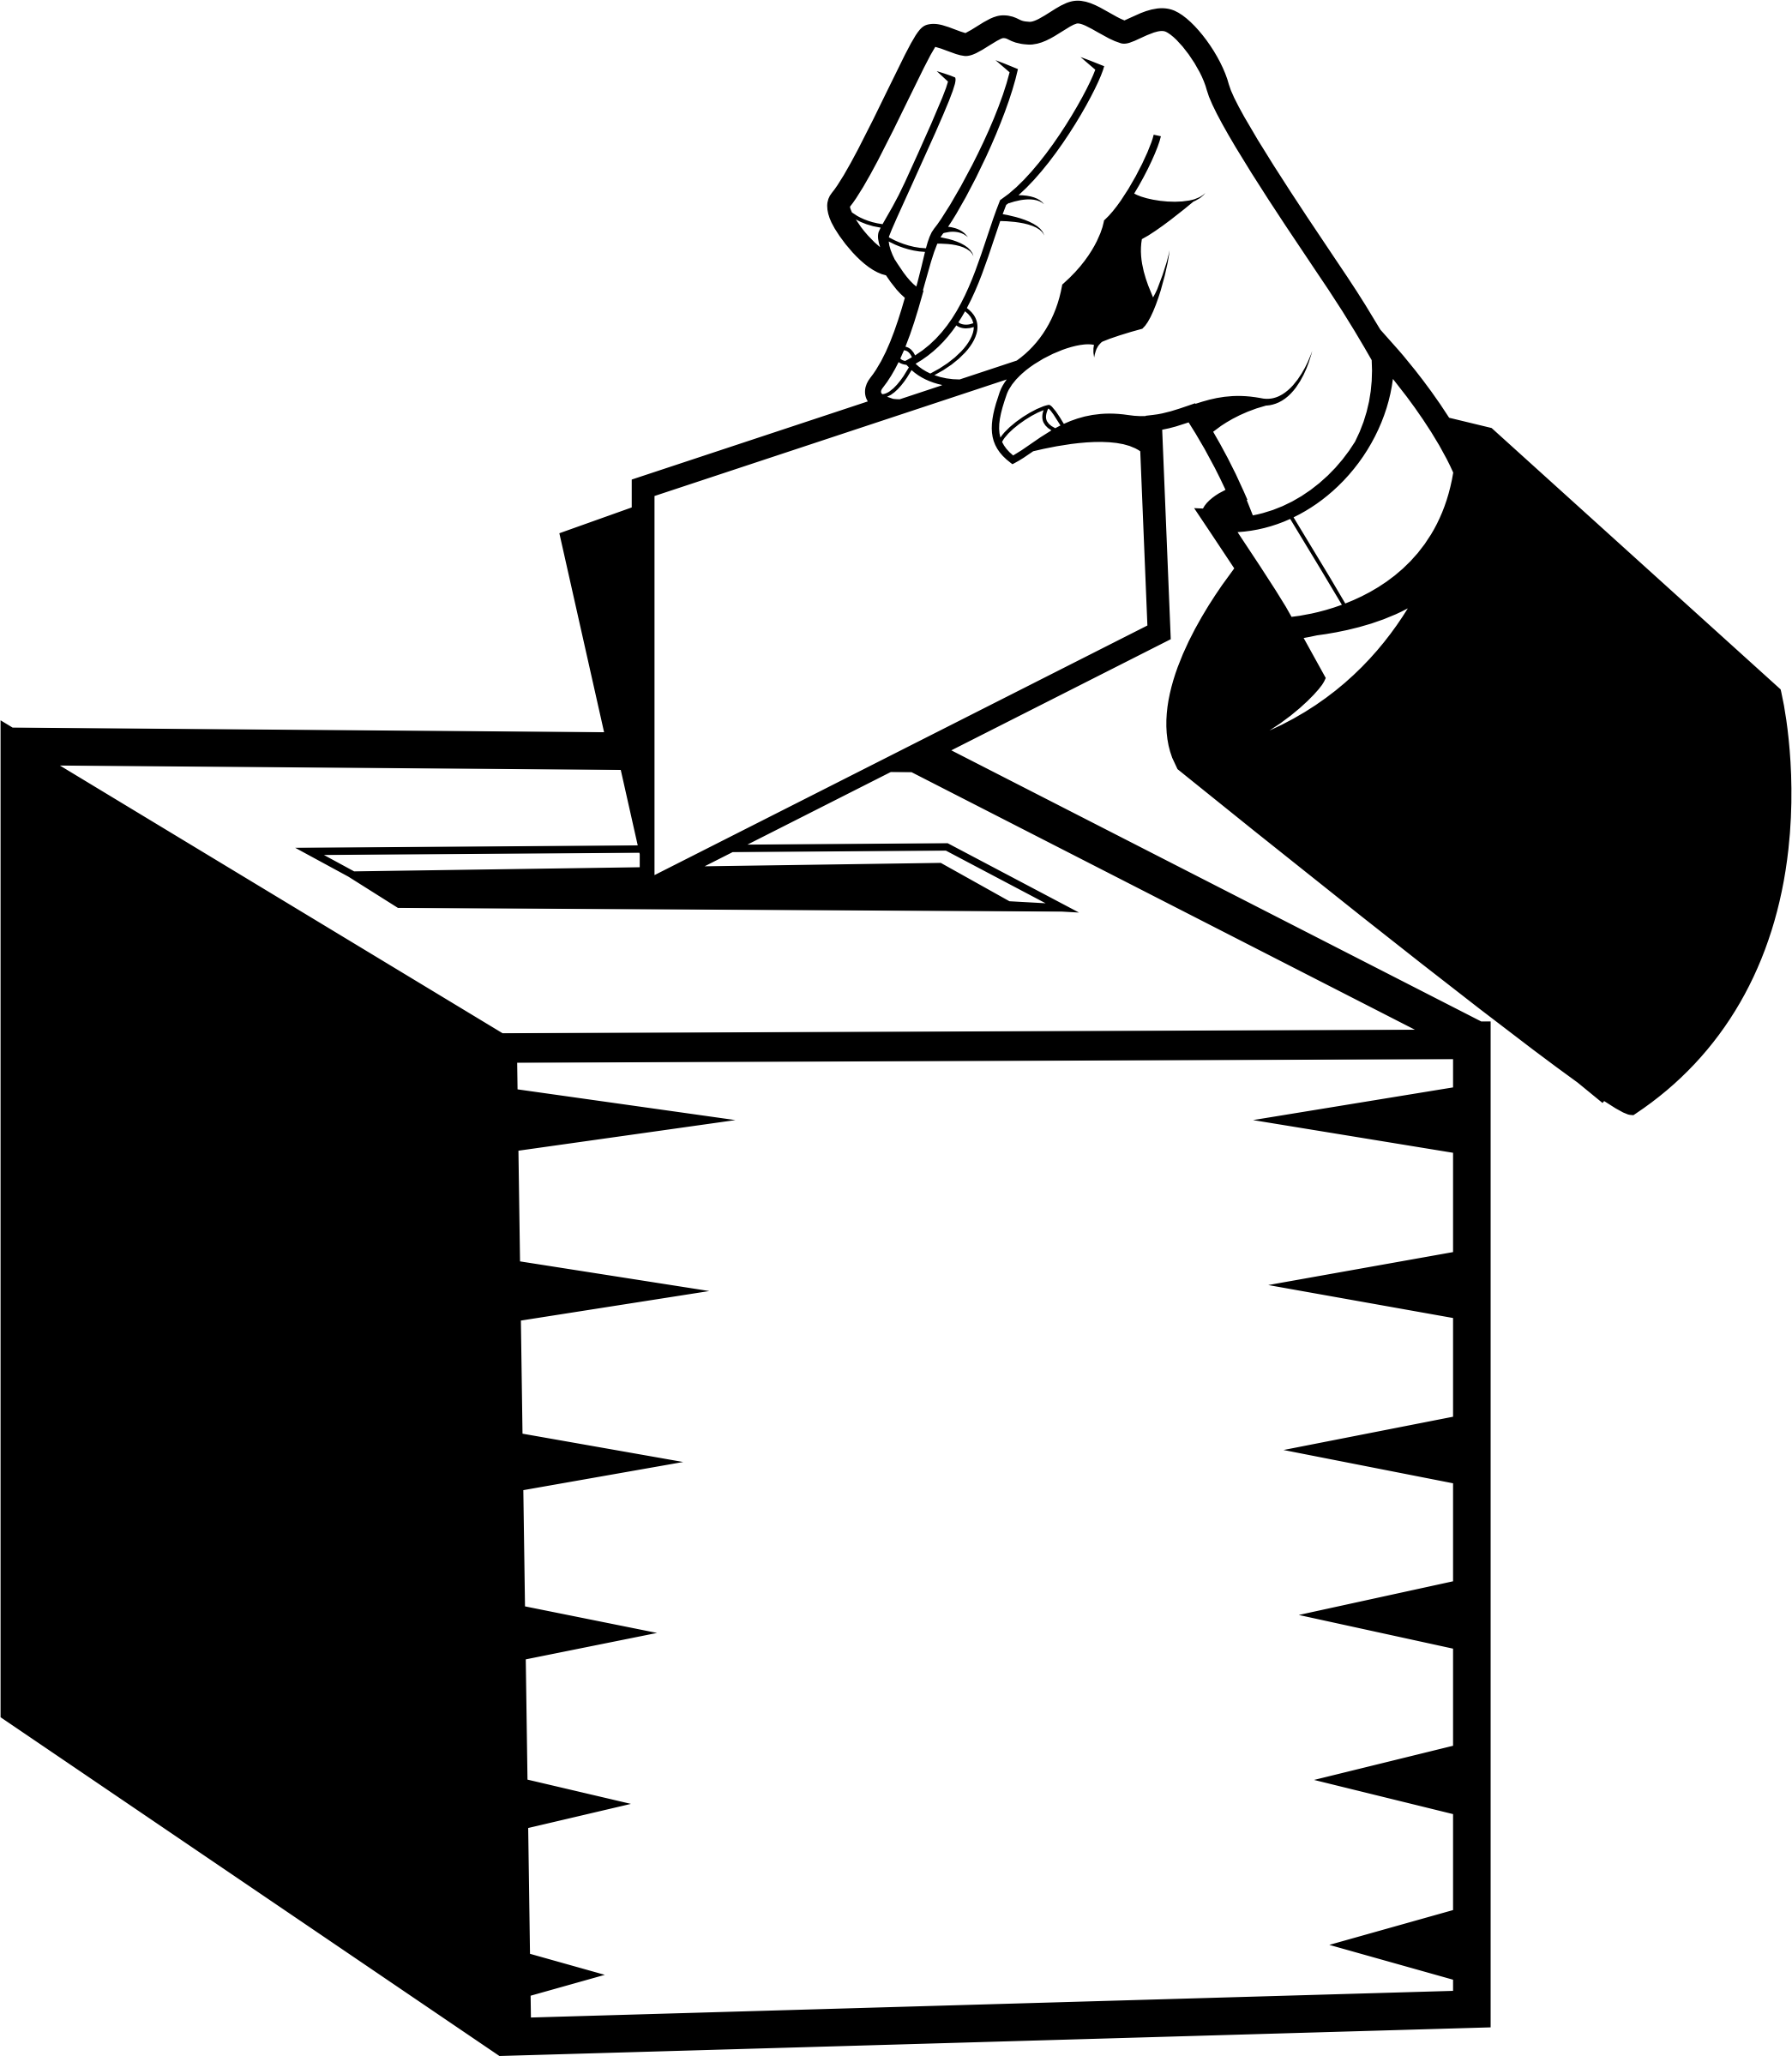 Voting clipart politics, Voting politics Transparent FREE.